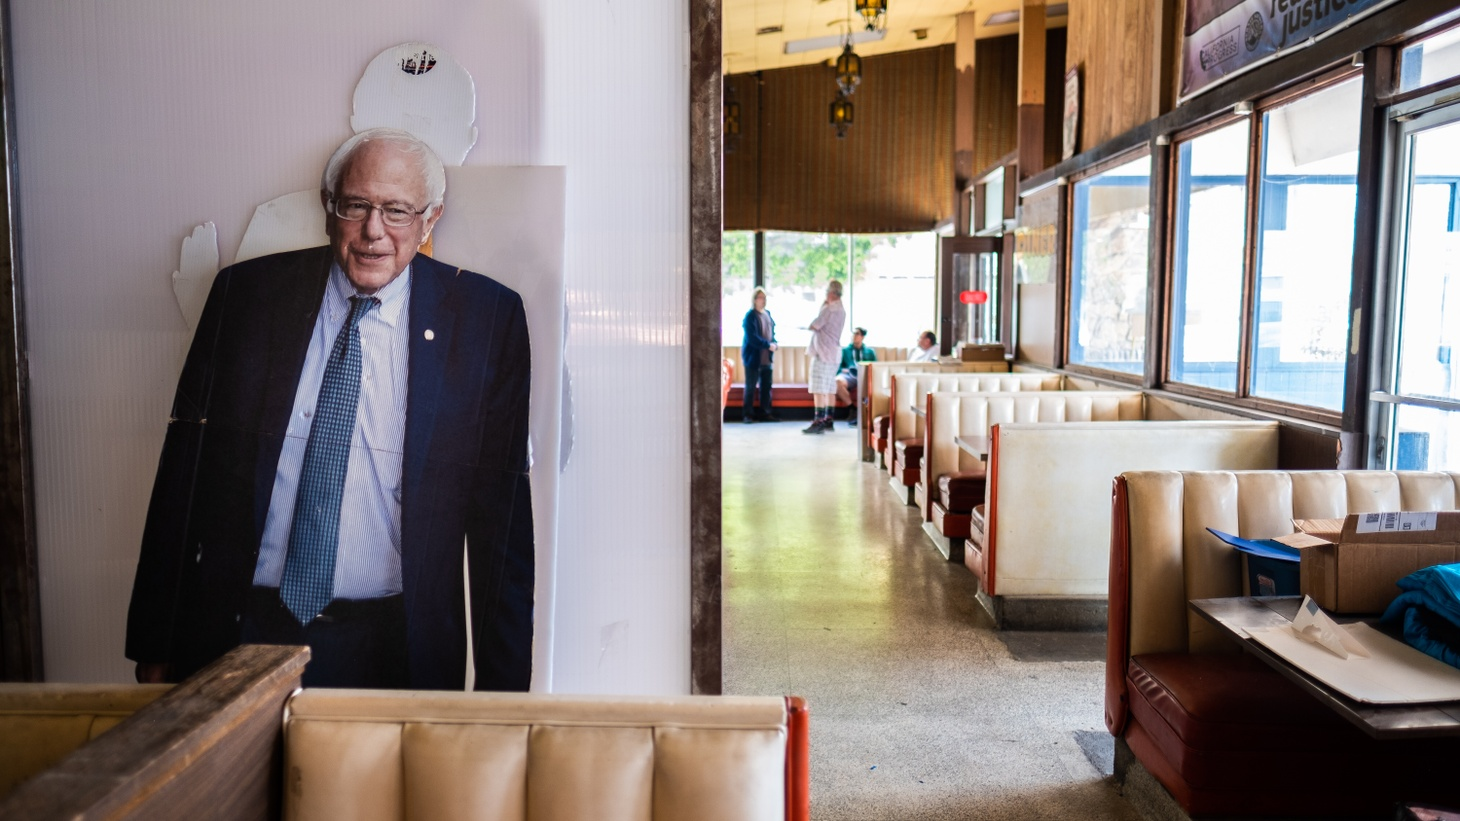 A cardboard candidate Bernie Sanders stands at the back of Bernie's Coffee Shop in Mid City, Los Angeles.